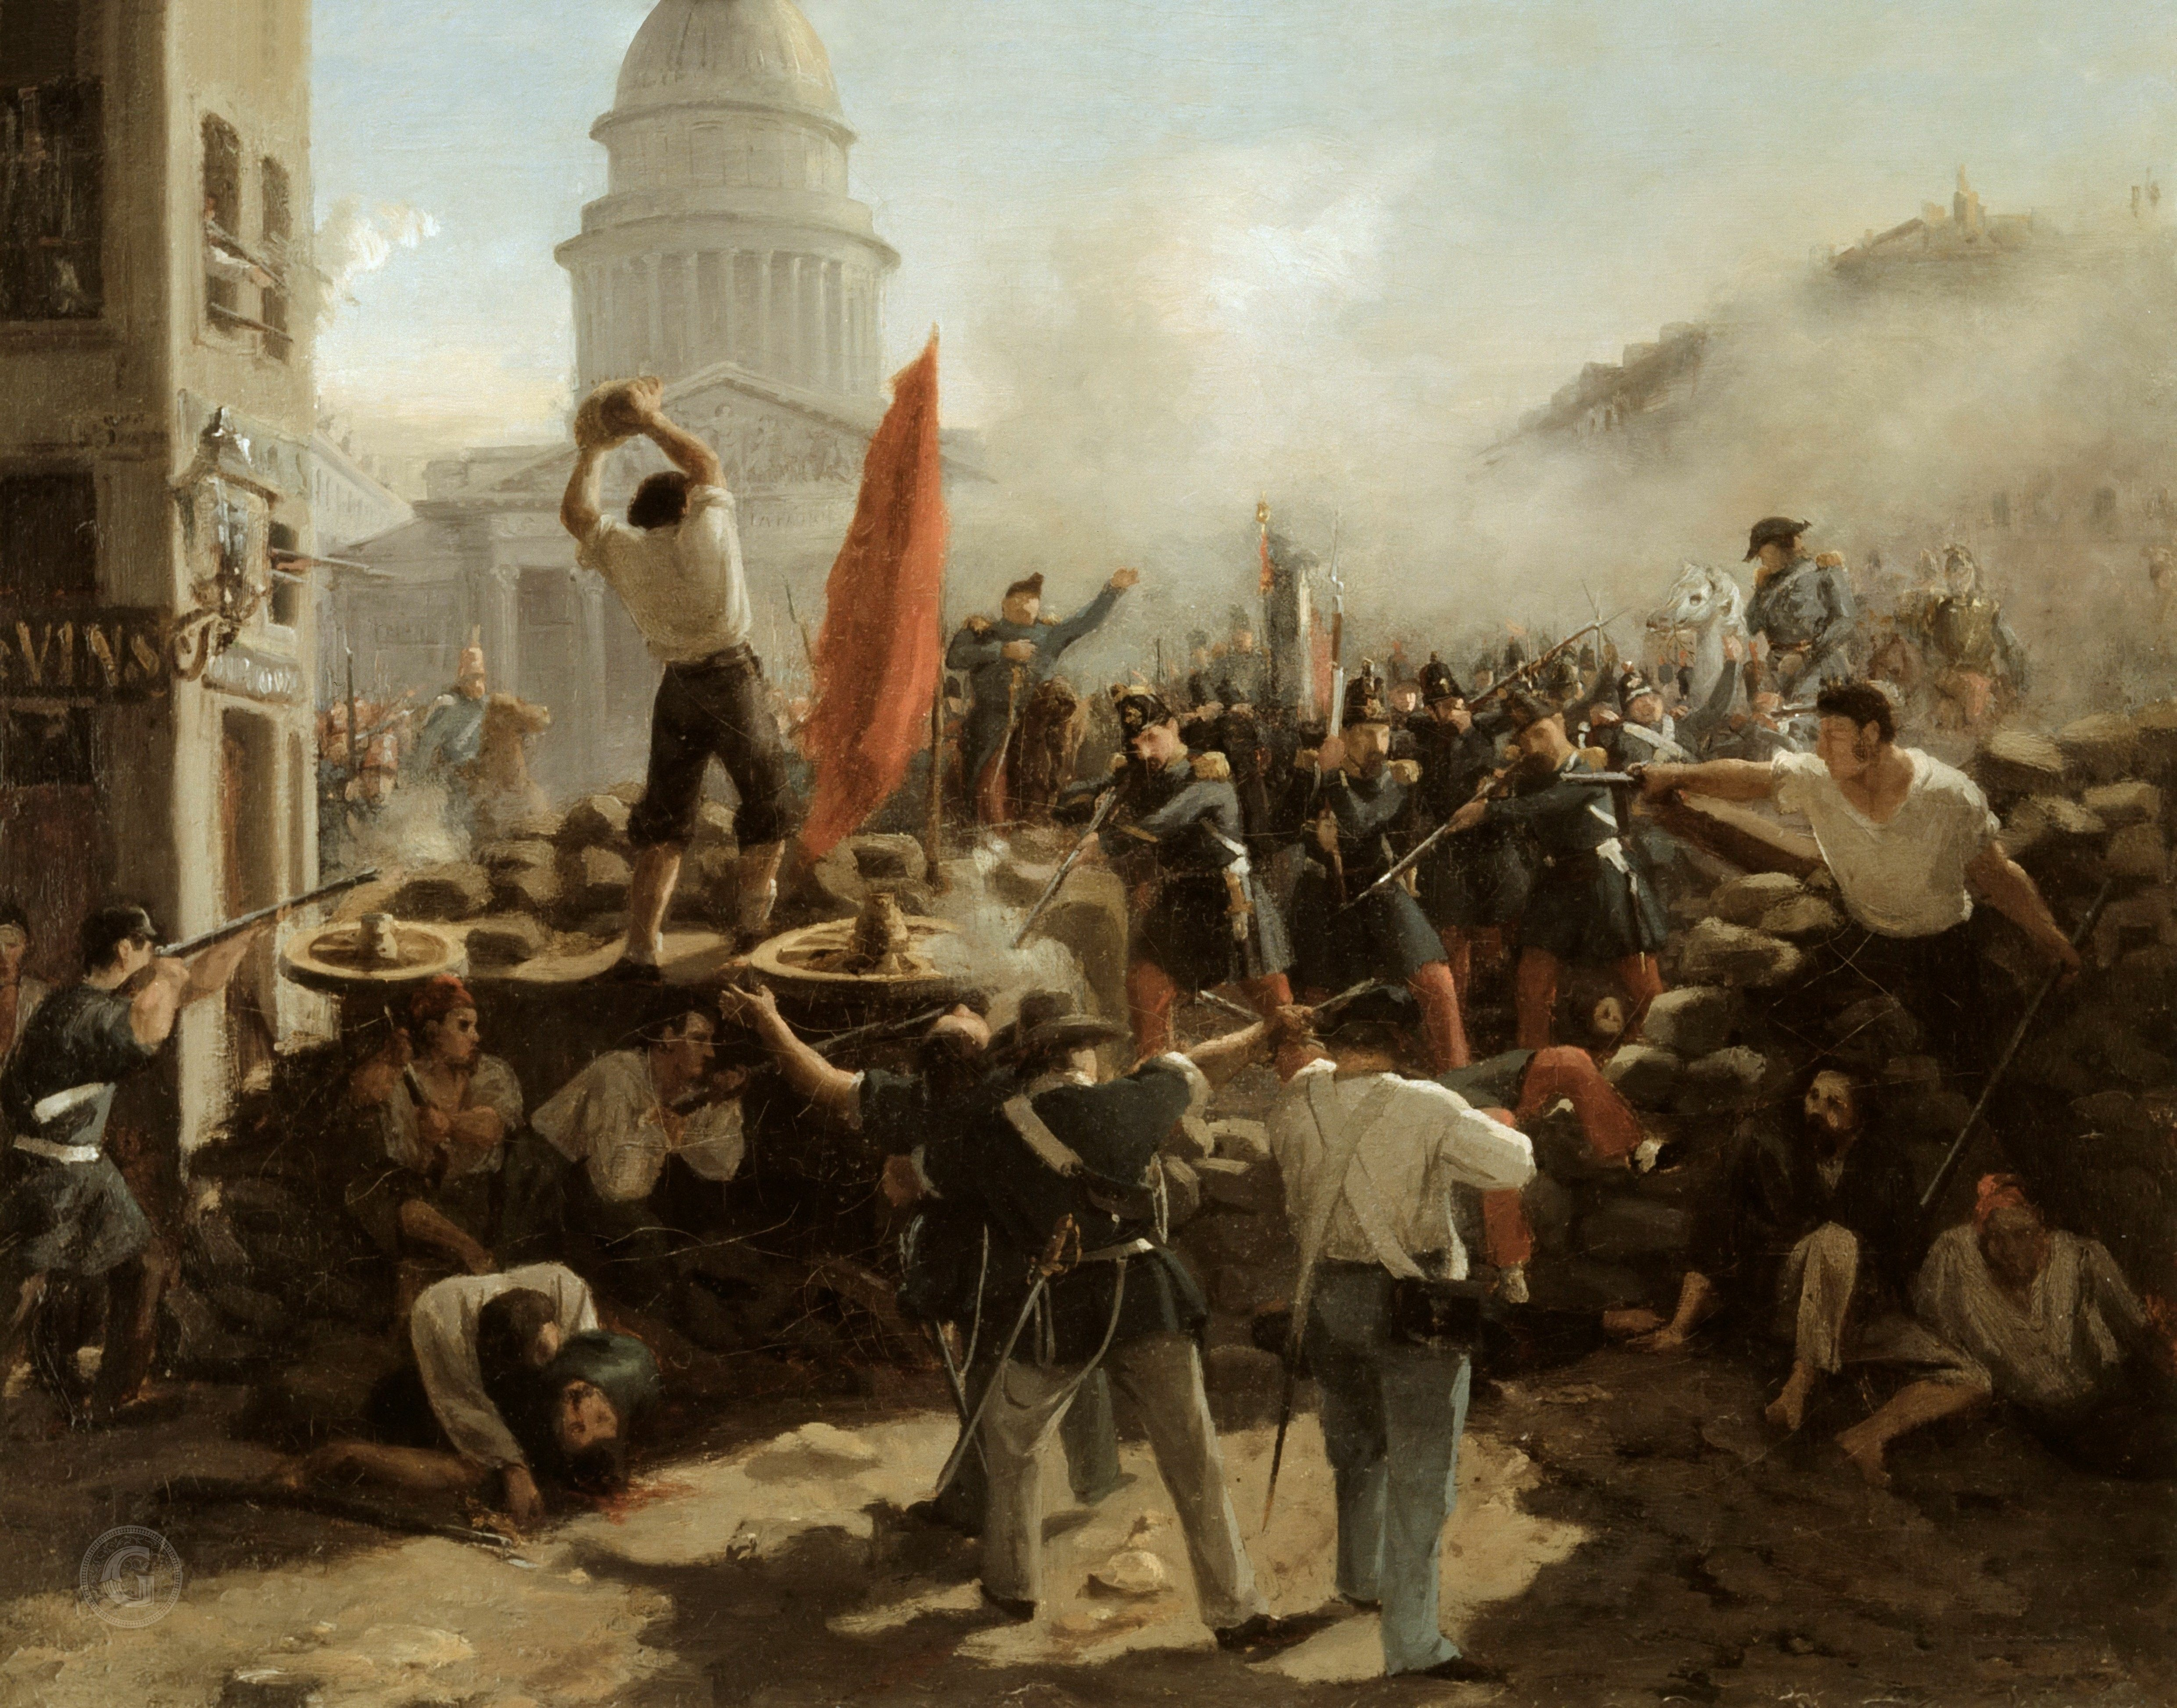 The Battle at the barricade in the Rue Soufflot, Paris, on 24 June 1848 by Horace Vernet